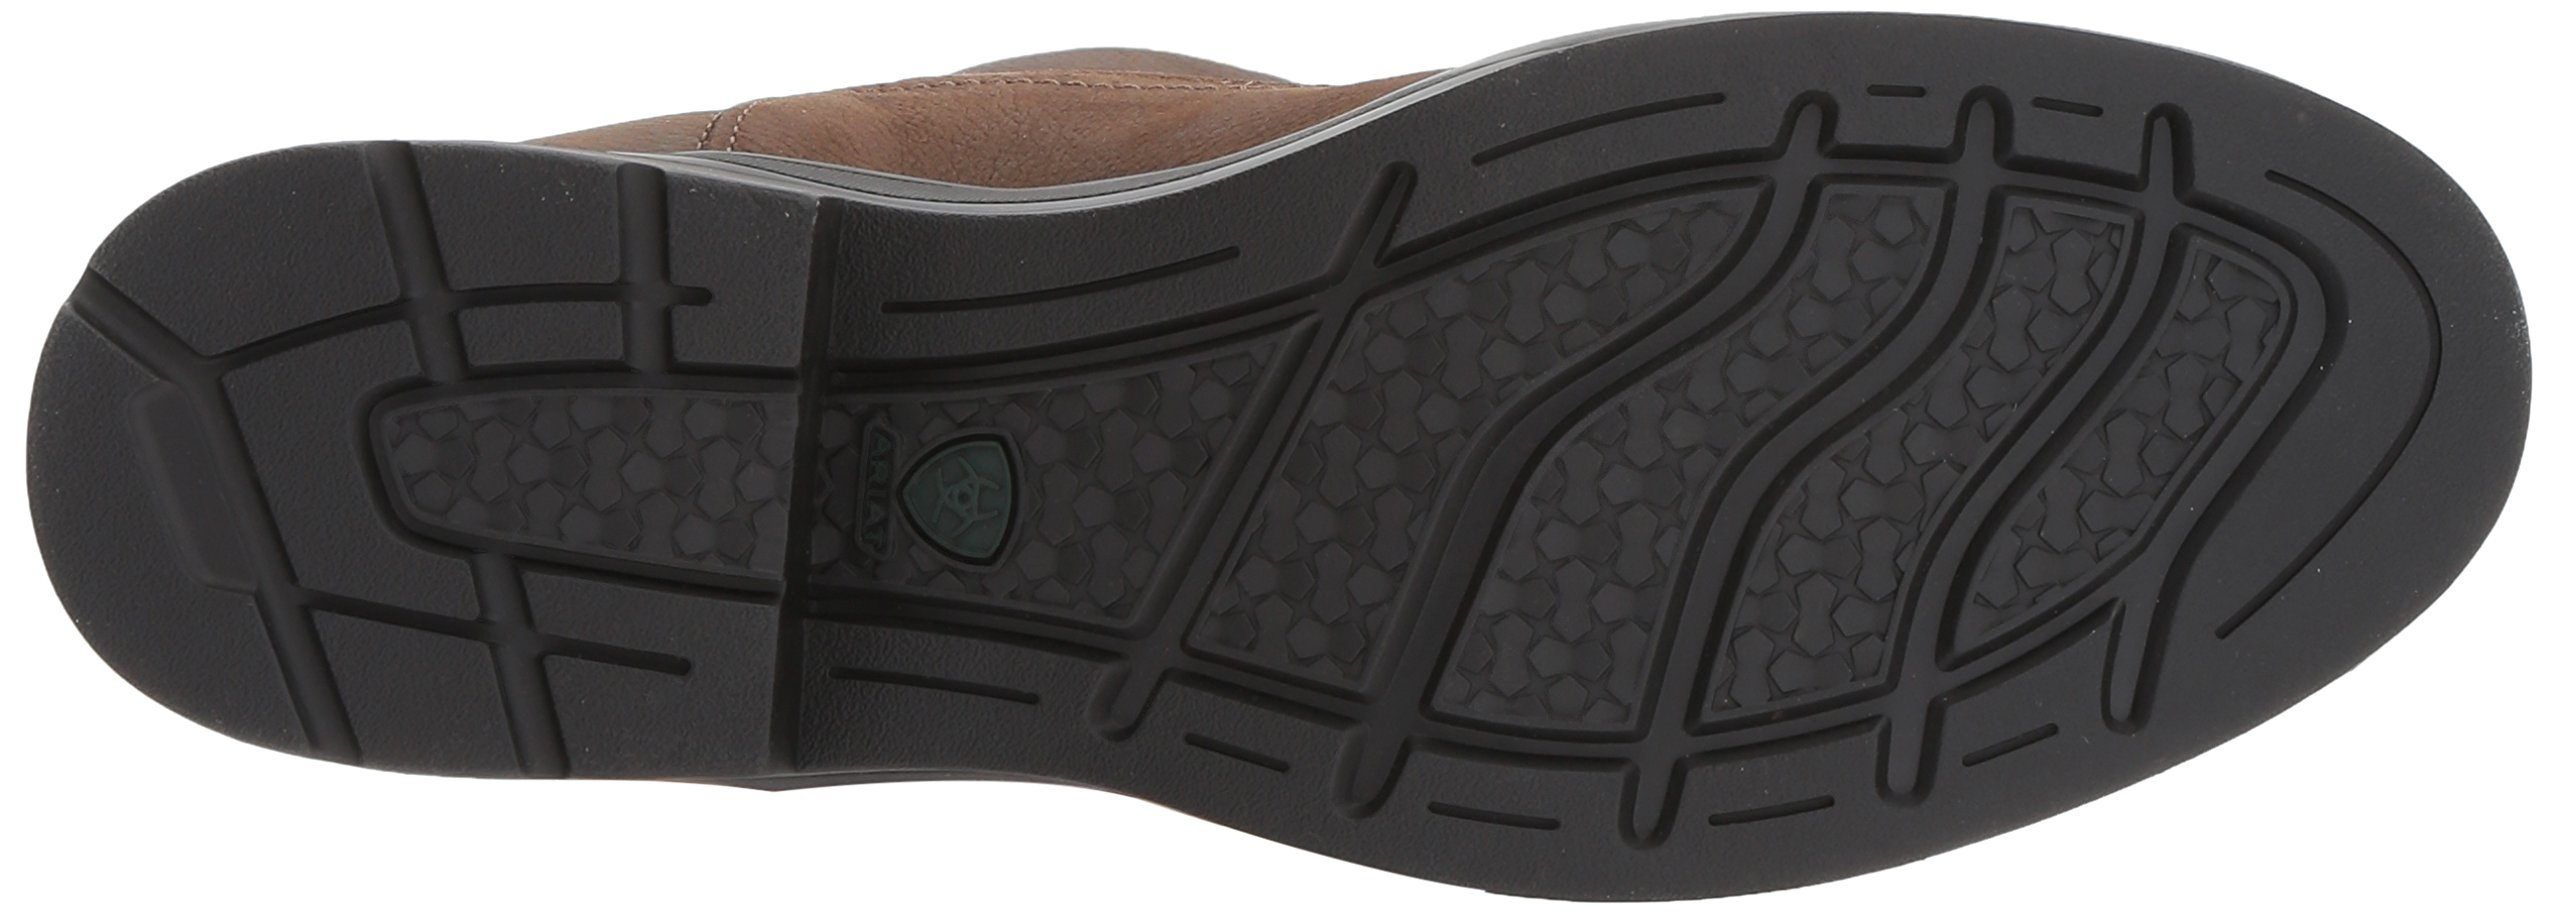 Ariat Women's Wythburn H2O Insulated Country Boot, Java, 7.5 B US by Ariat (Image #3)